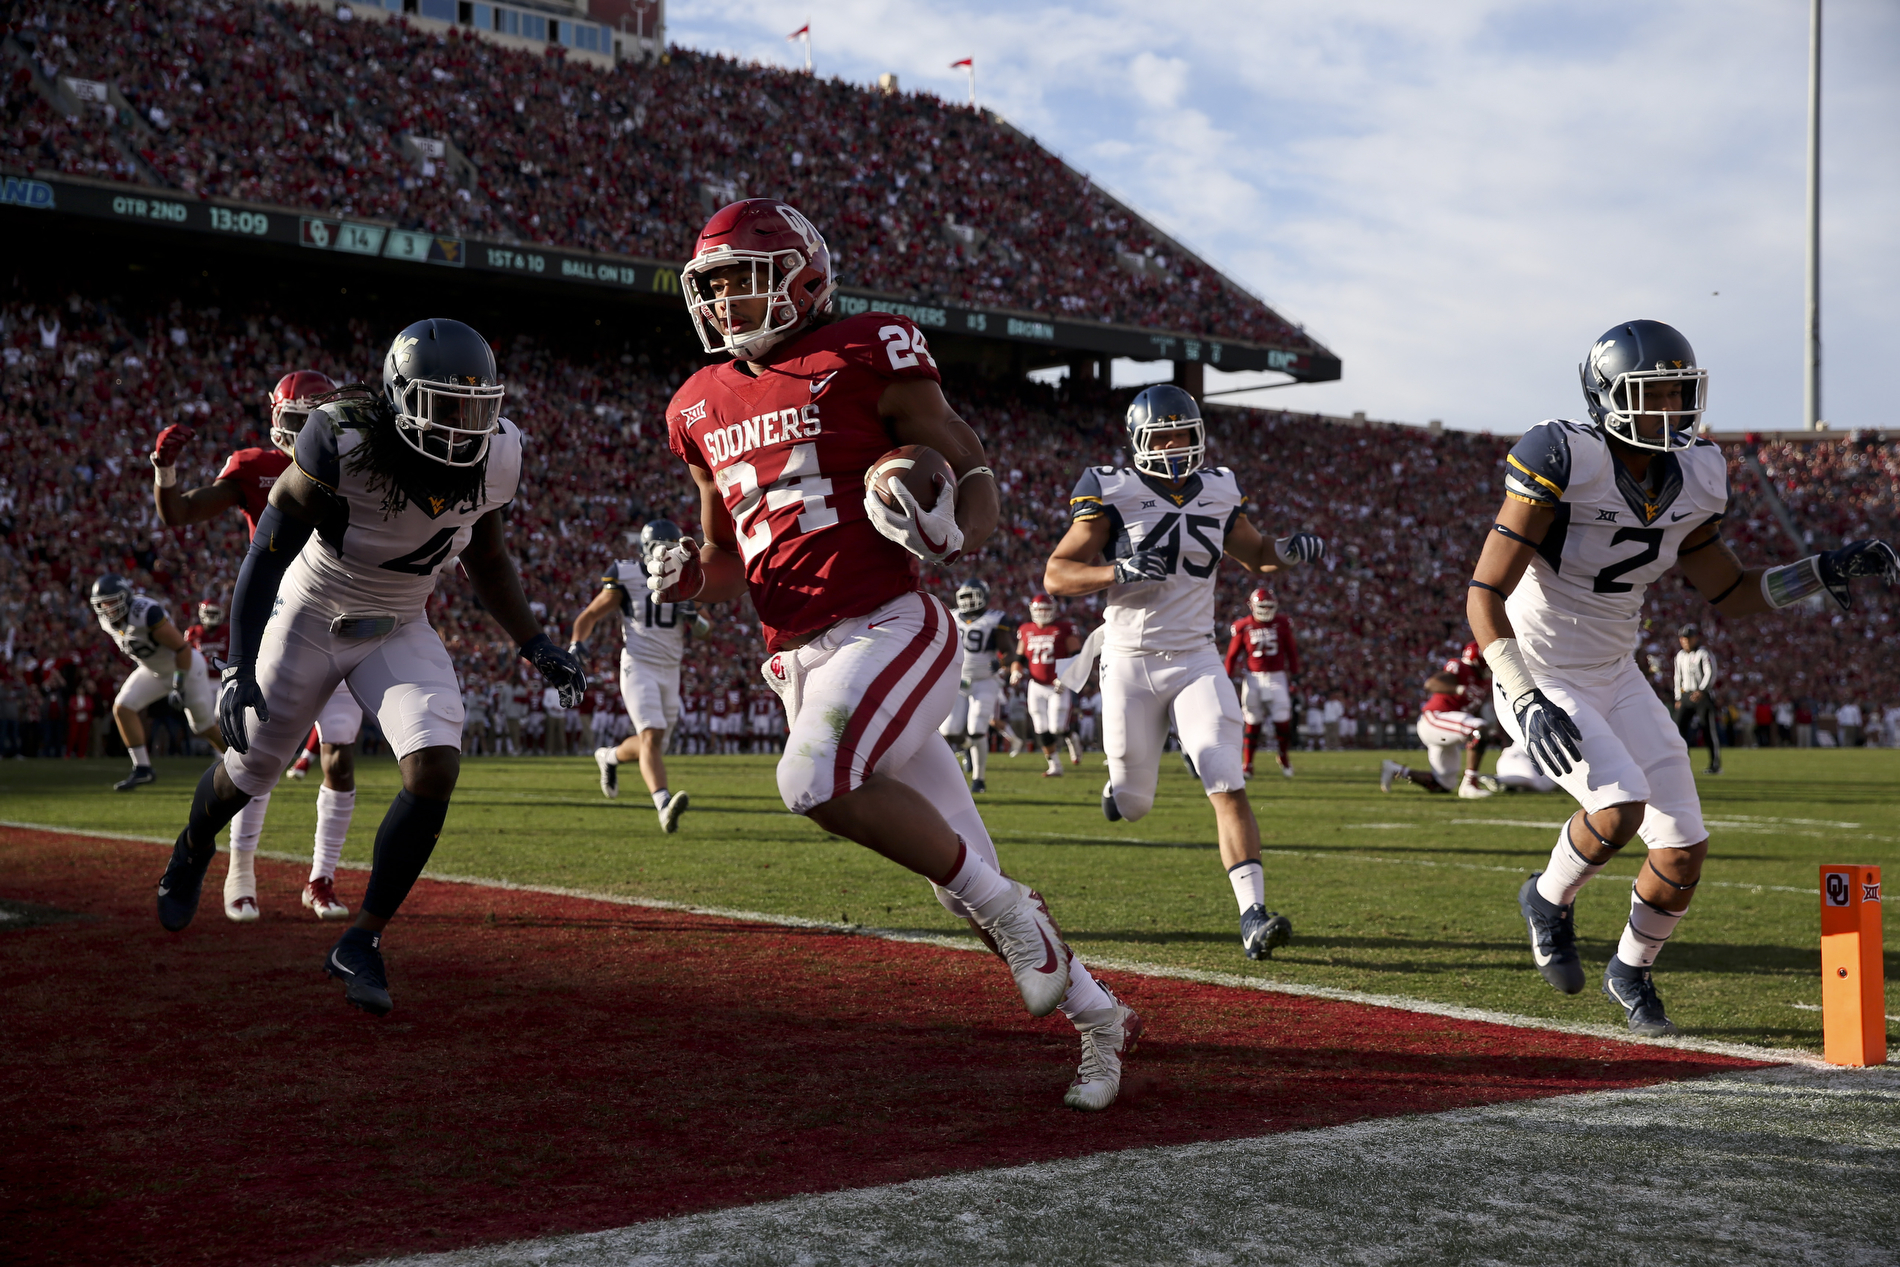 Oklahoma running back Rodney Anderson (24) runs passed West Virginia cornerback Mike Daniels Jr. (4), linebacker Adam Hensley (45) and safety Kenny Robinson (2) while scoring a touchdown during an NCAA college football game in Norman, Okla., Saturday, Nov. 25, 2017. (Ian Maule/Tulsa World via AP)